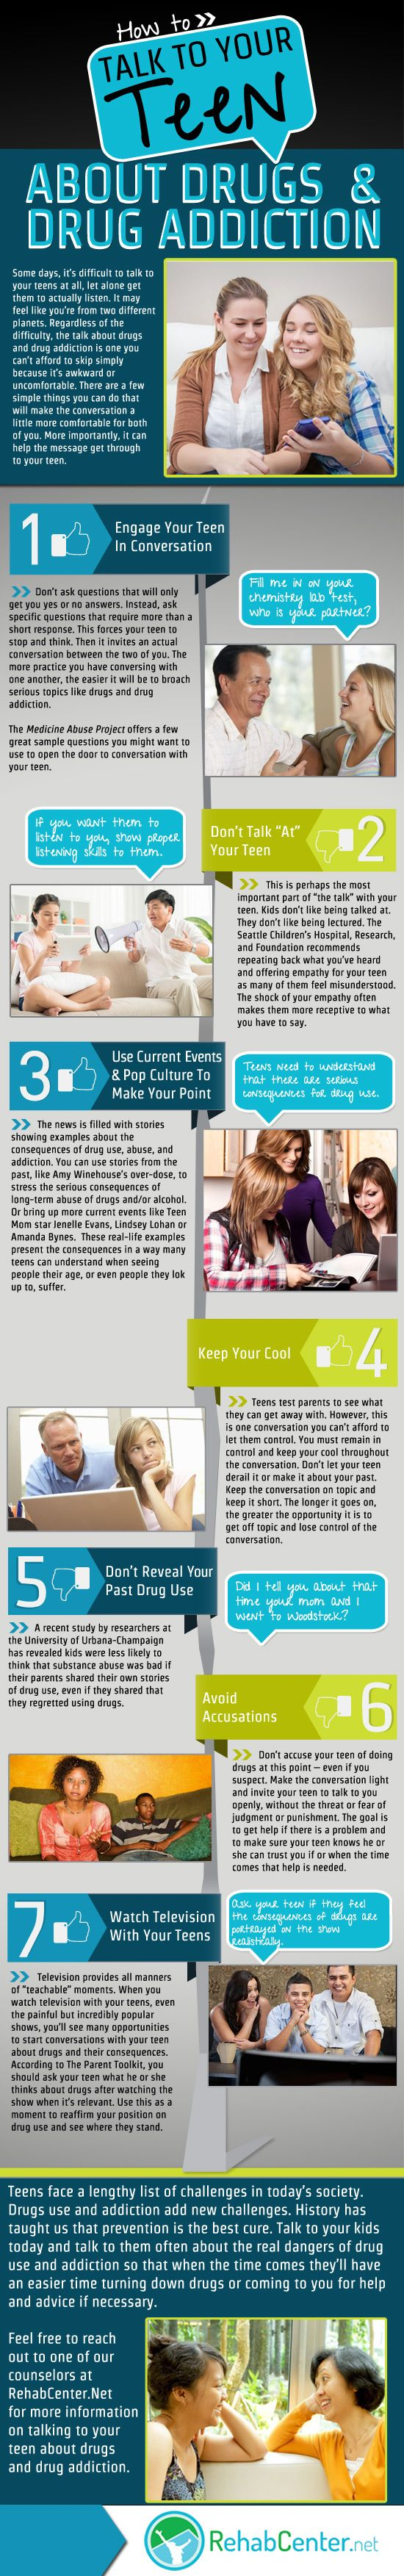 Discover how to talk to your teenager about drugs and drug abuse with a visually stunning info-graphic that is easy to read and has a PDF version for you to download.   http://www.rehabcenter.net/how-to-talk-to-your-teen-about-drugs-and-drug-addiction-infographic/